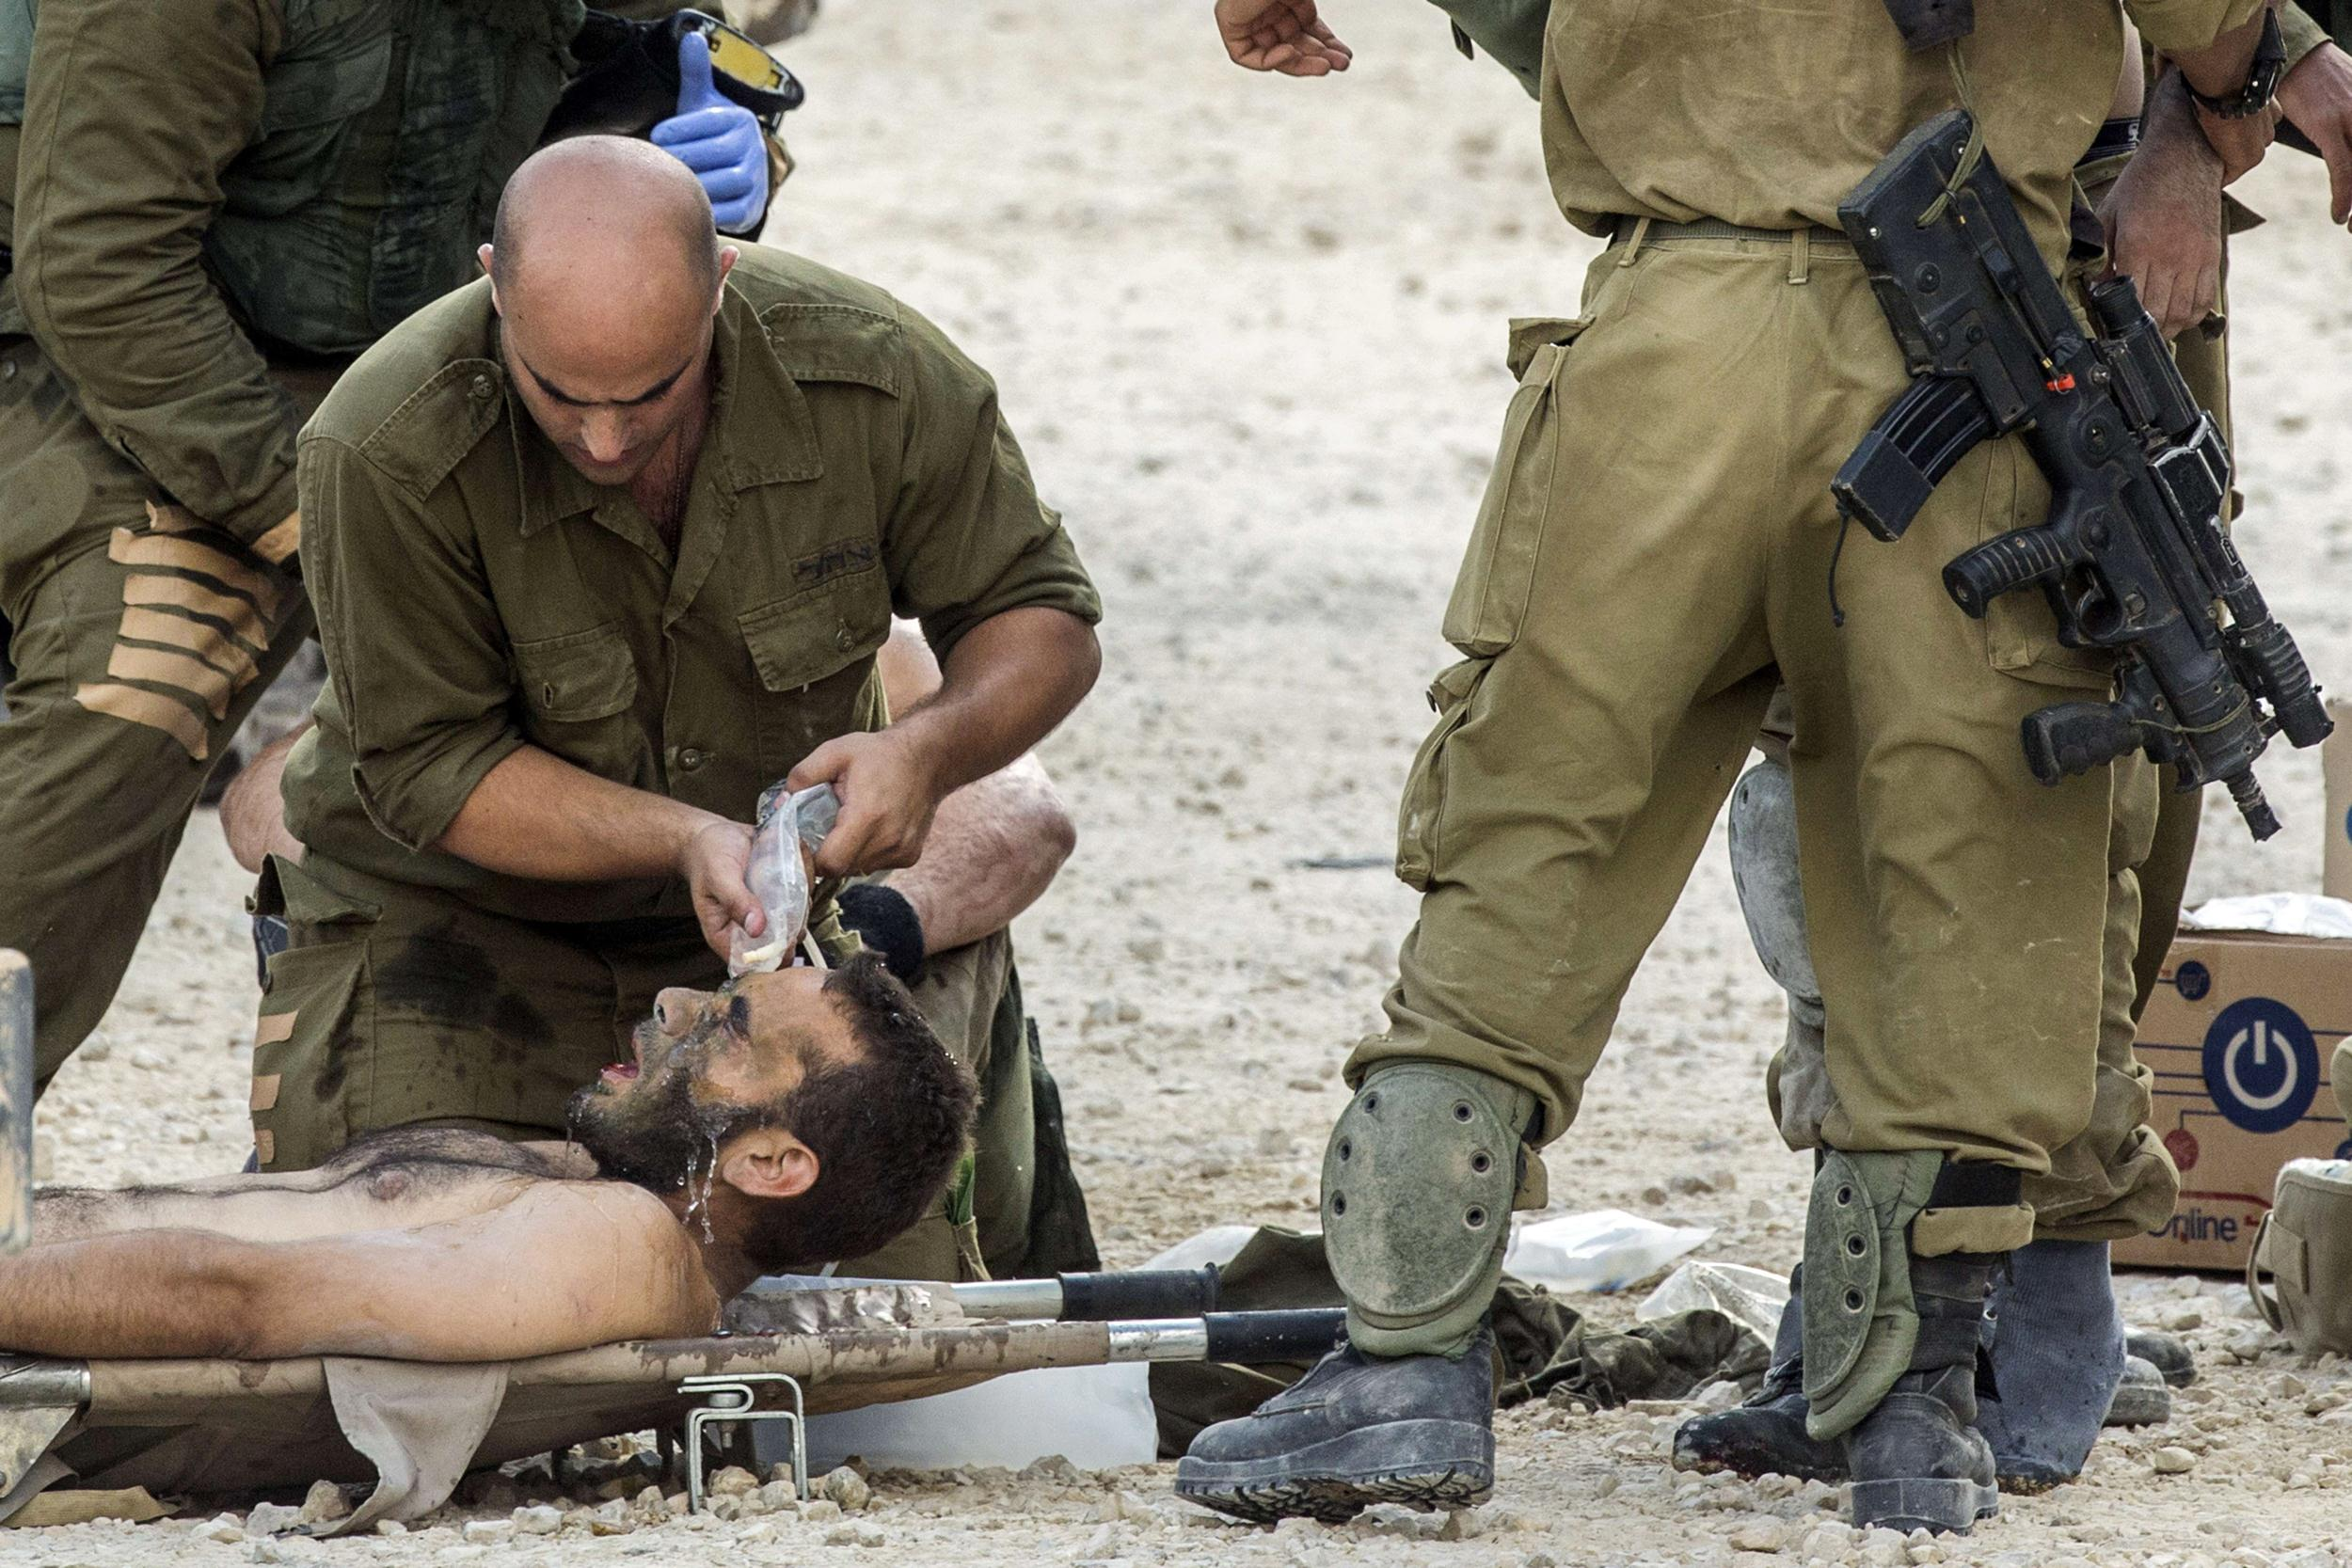 israel ramps up gaza offensive after 13 idf soldiers